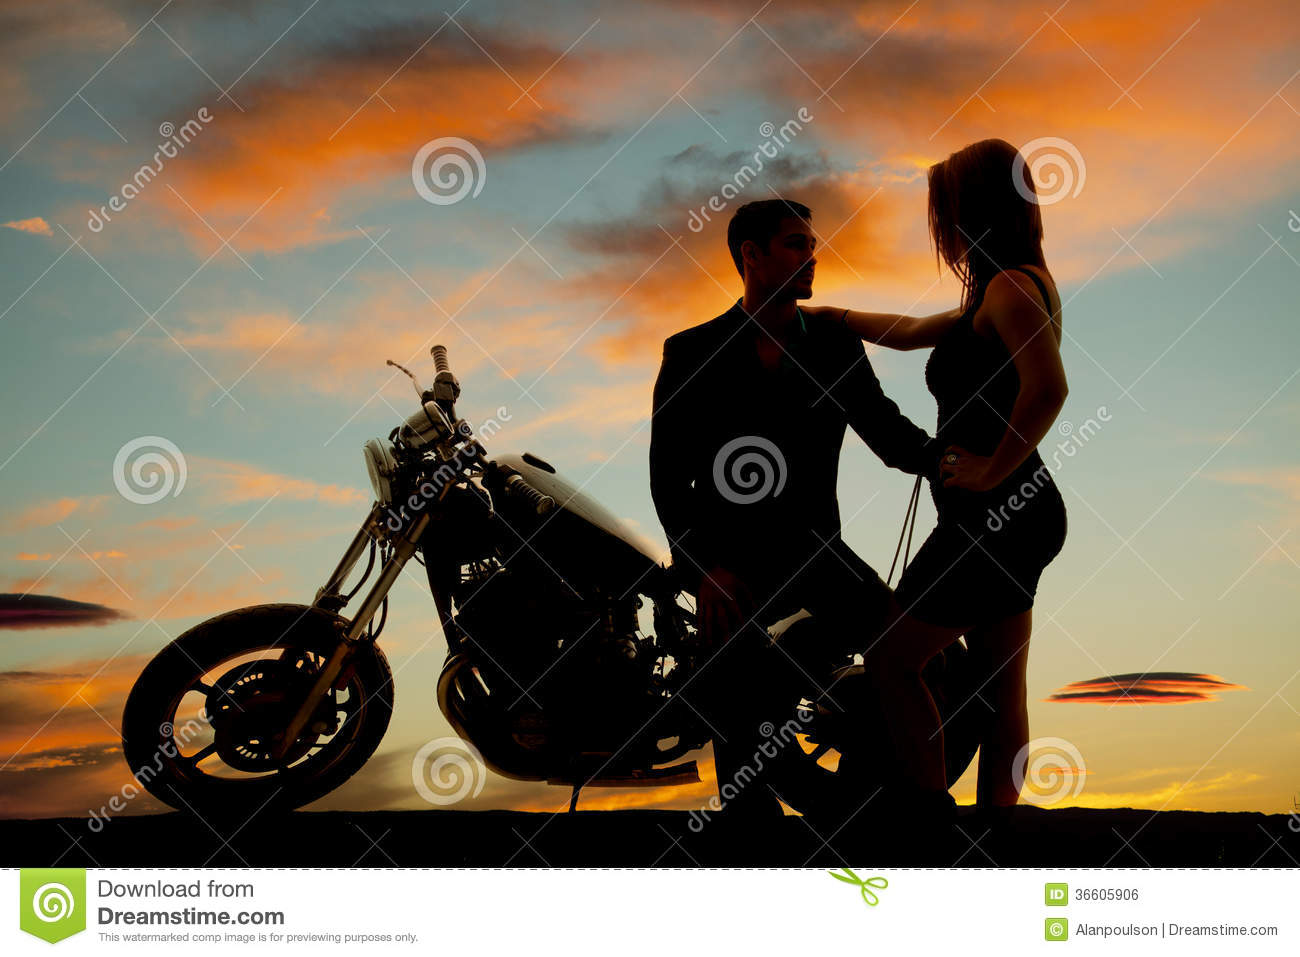 Silhouette Of Woman By Man On Motorcycle Royalty Free -2640